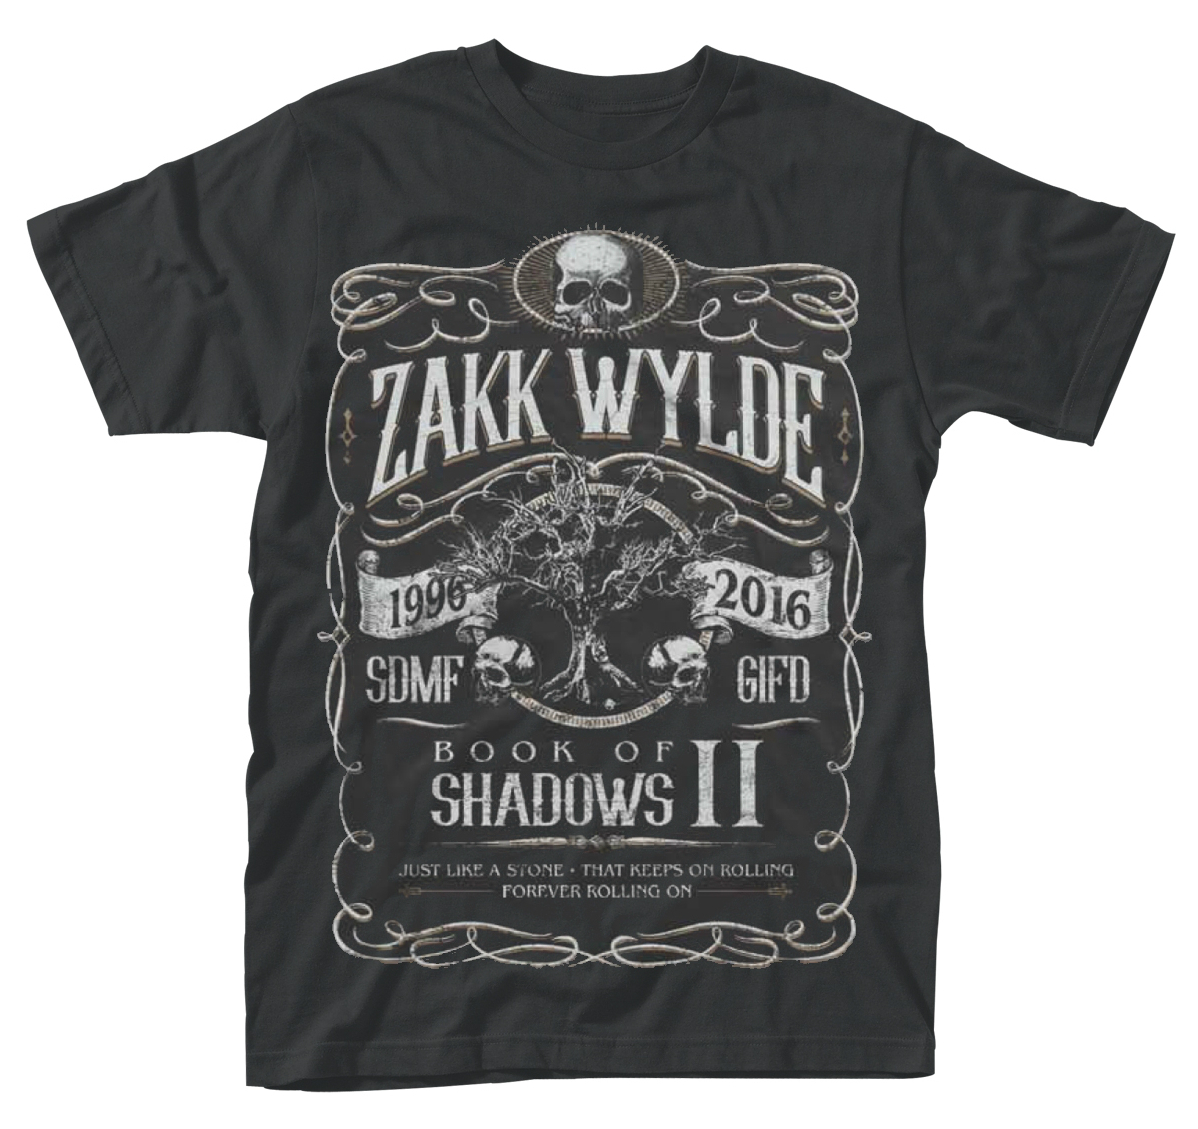 Zakk wylde 39 book of shadows ii 39 t shirt new official for Entire book on shirt